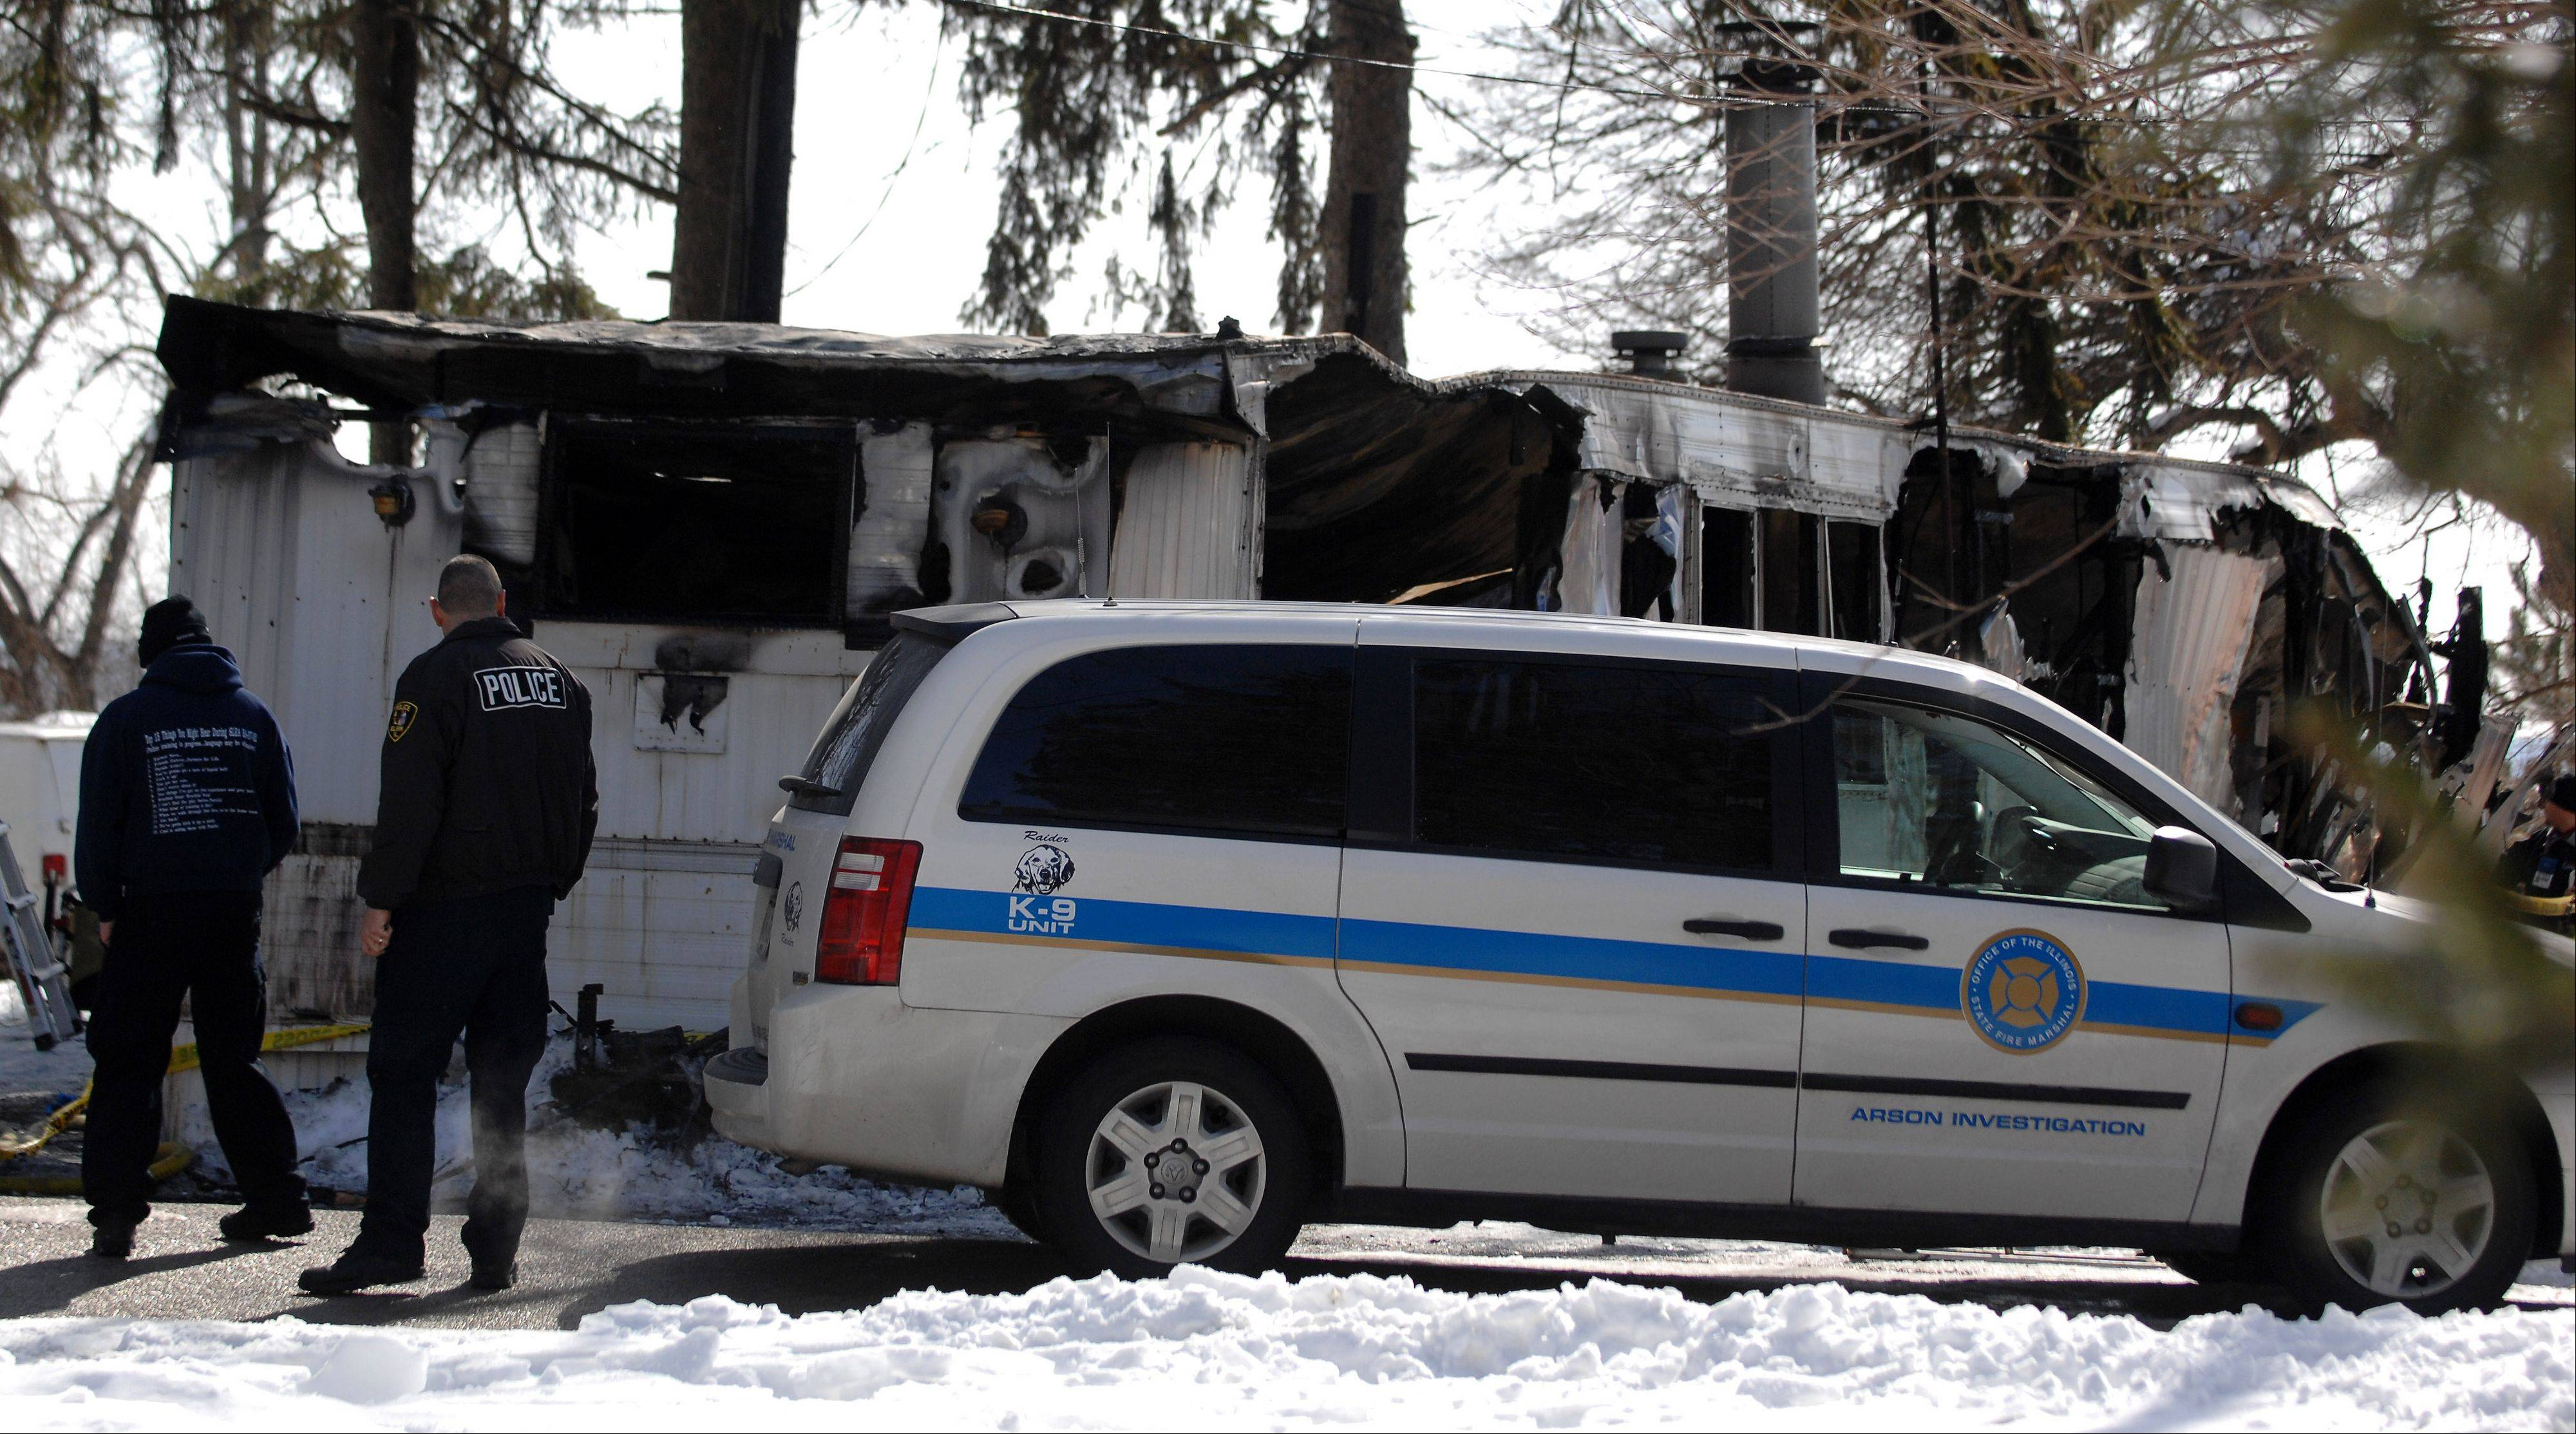 Police and arson investigators check out the scene of a fire Friday morning in a mobile home park on South McLean Boulevard in Elgin.